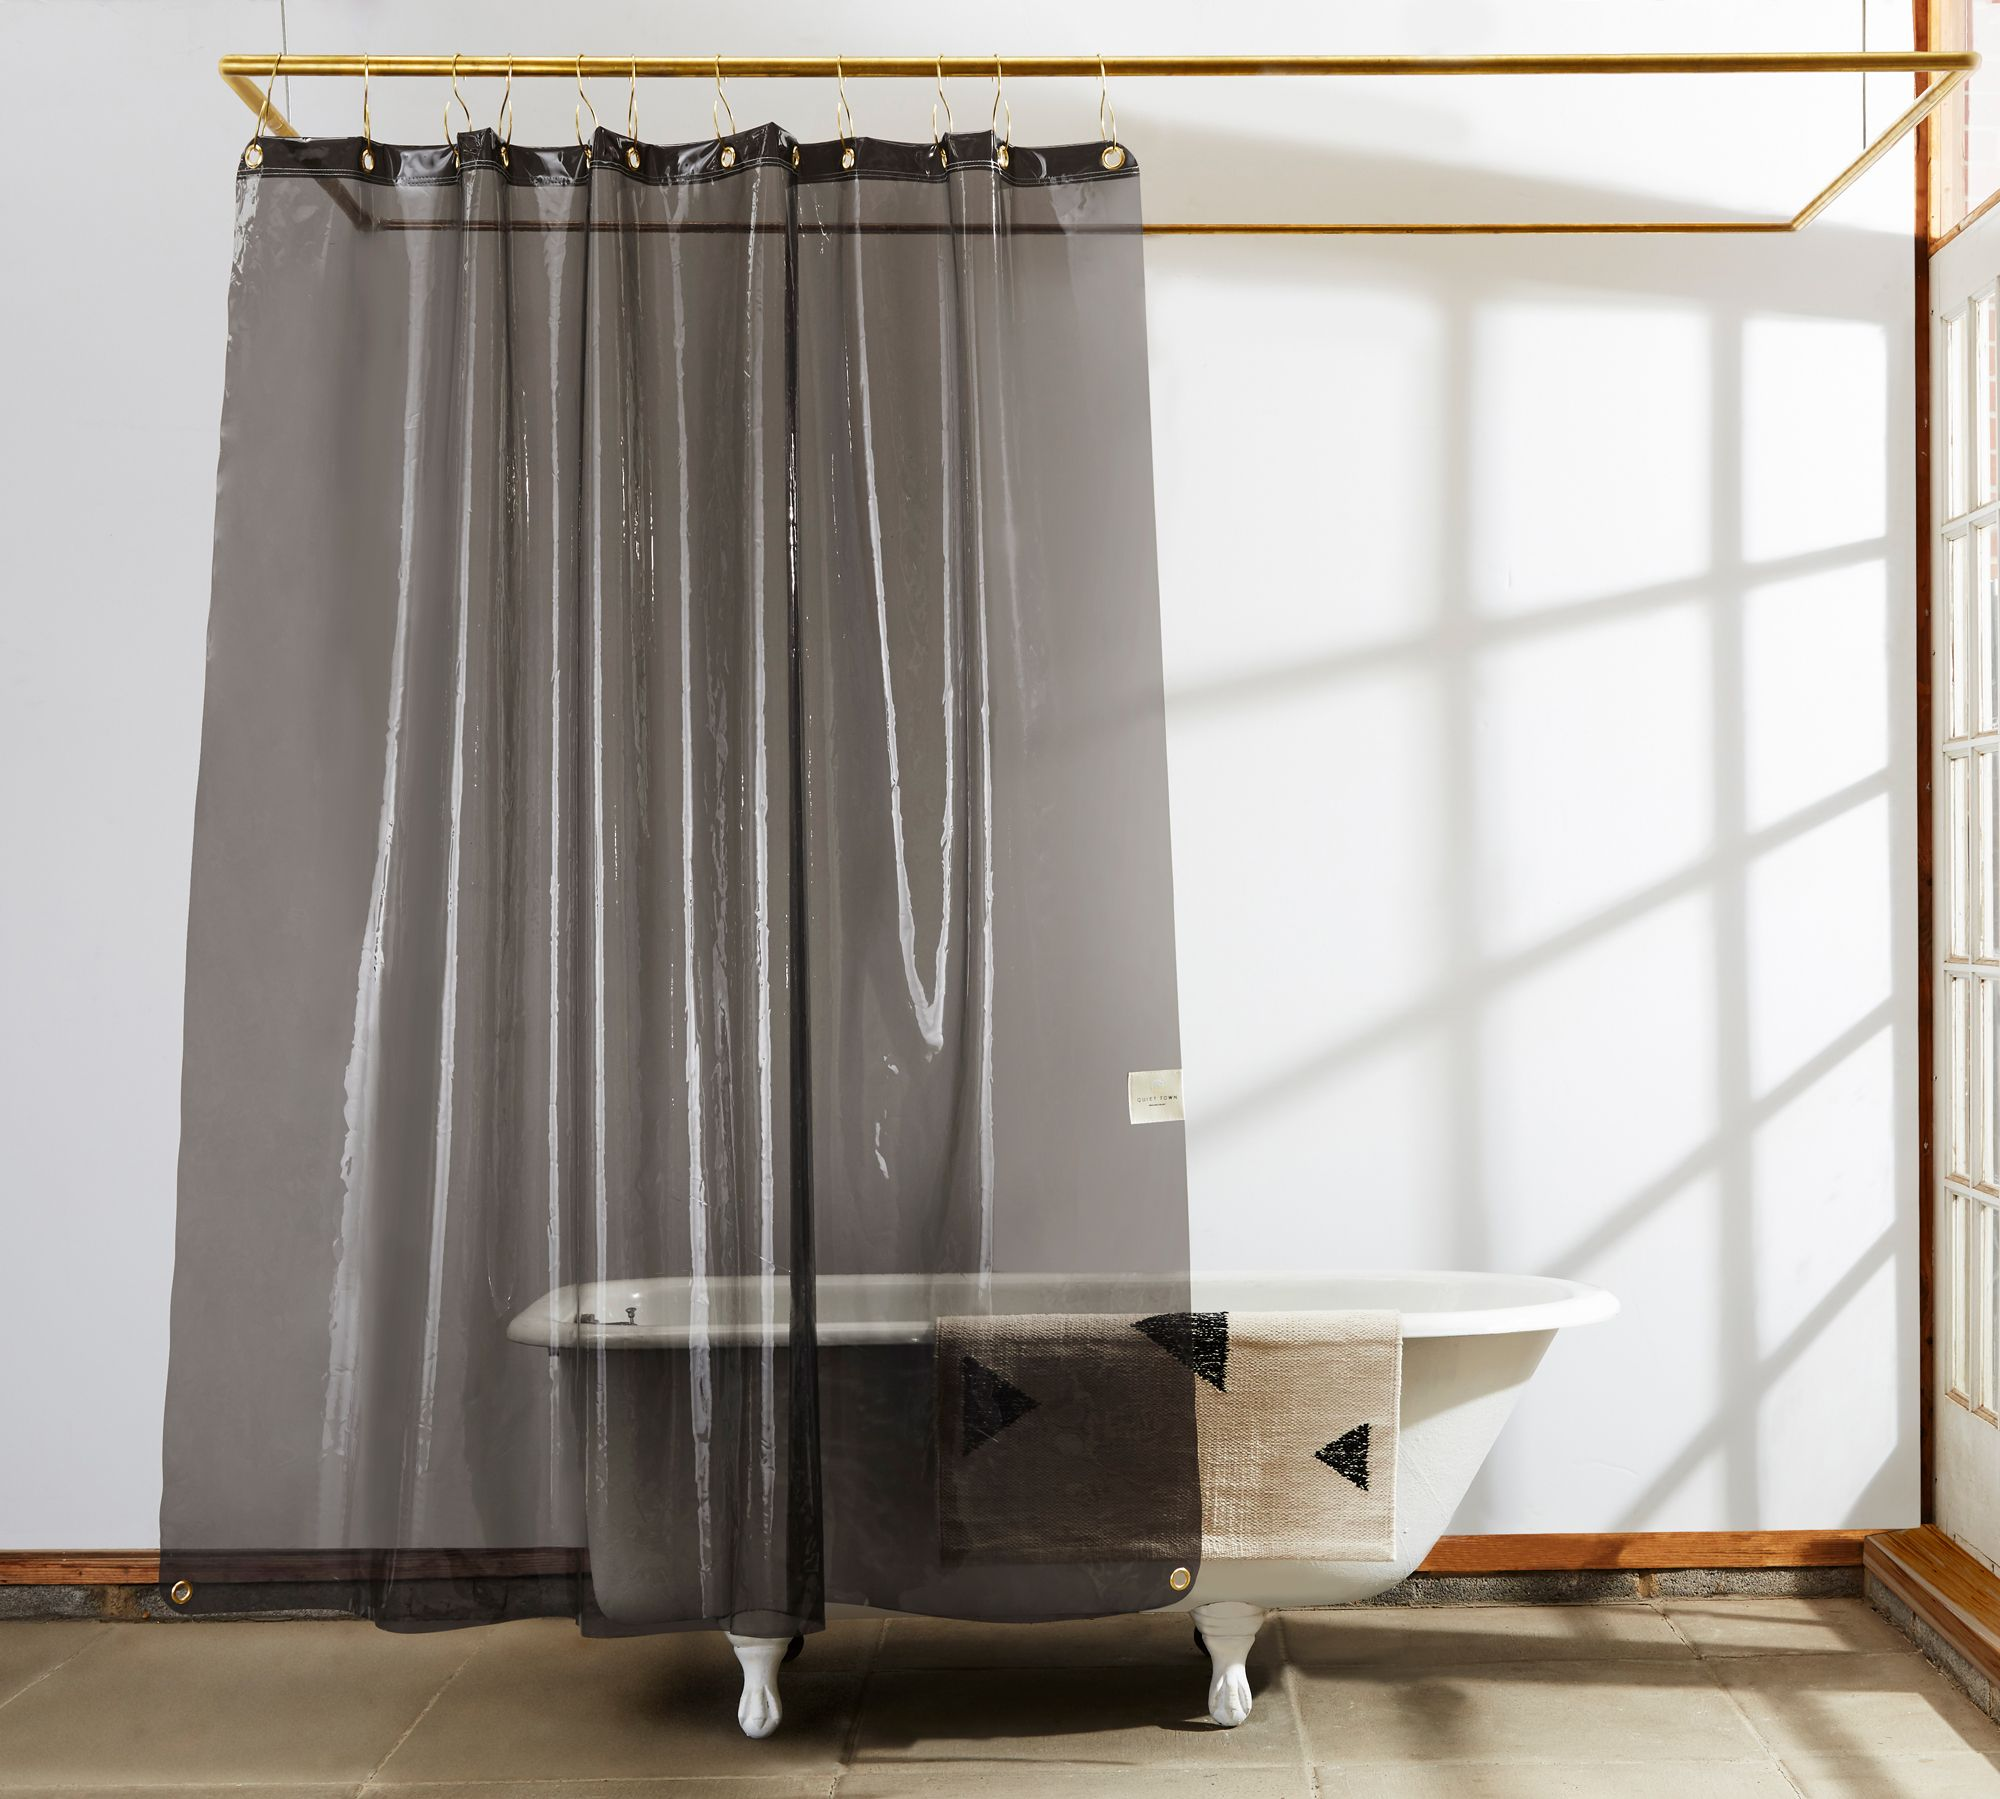 Curtain Hotel See Through Shower Curtains Sheer Fabric Shower